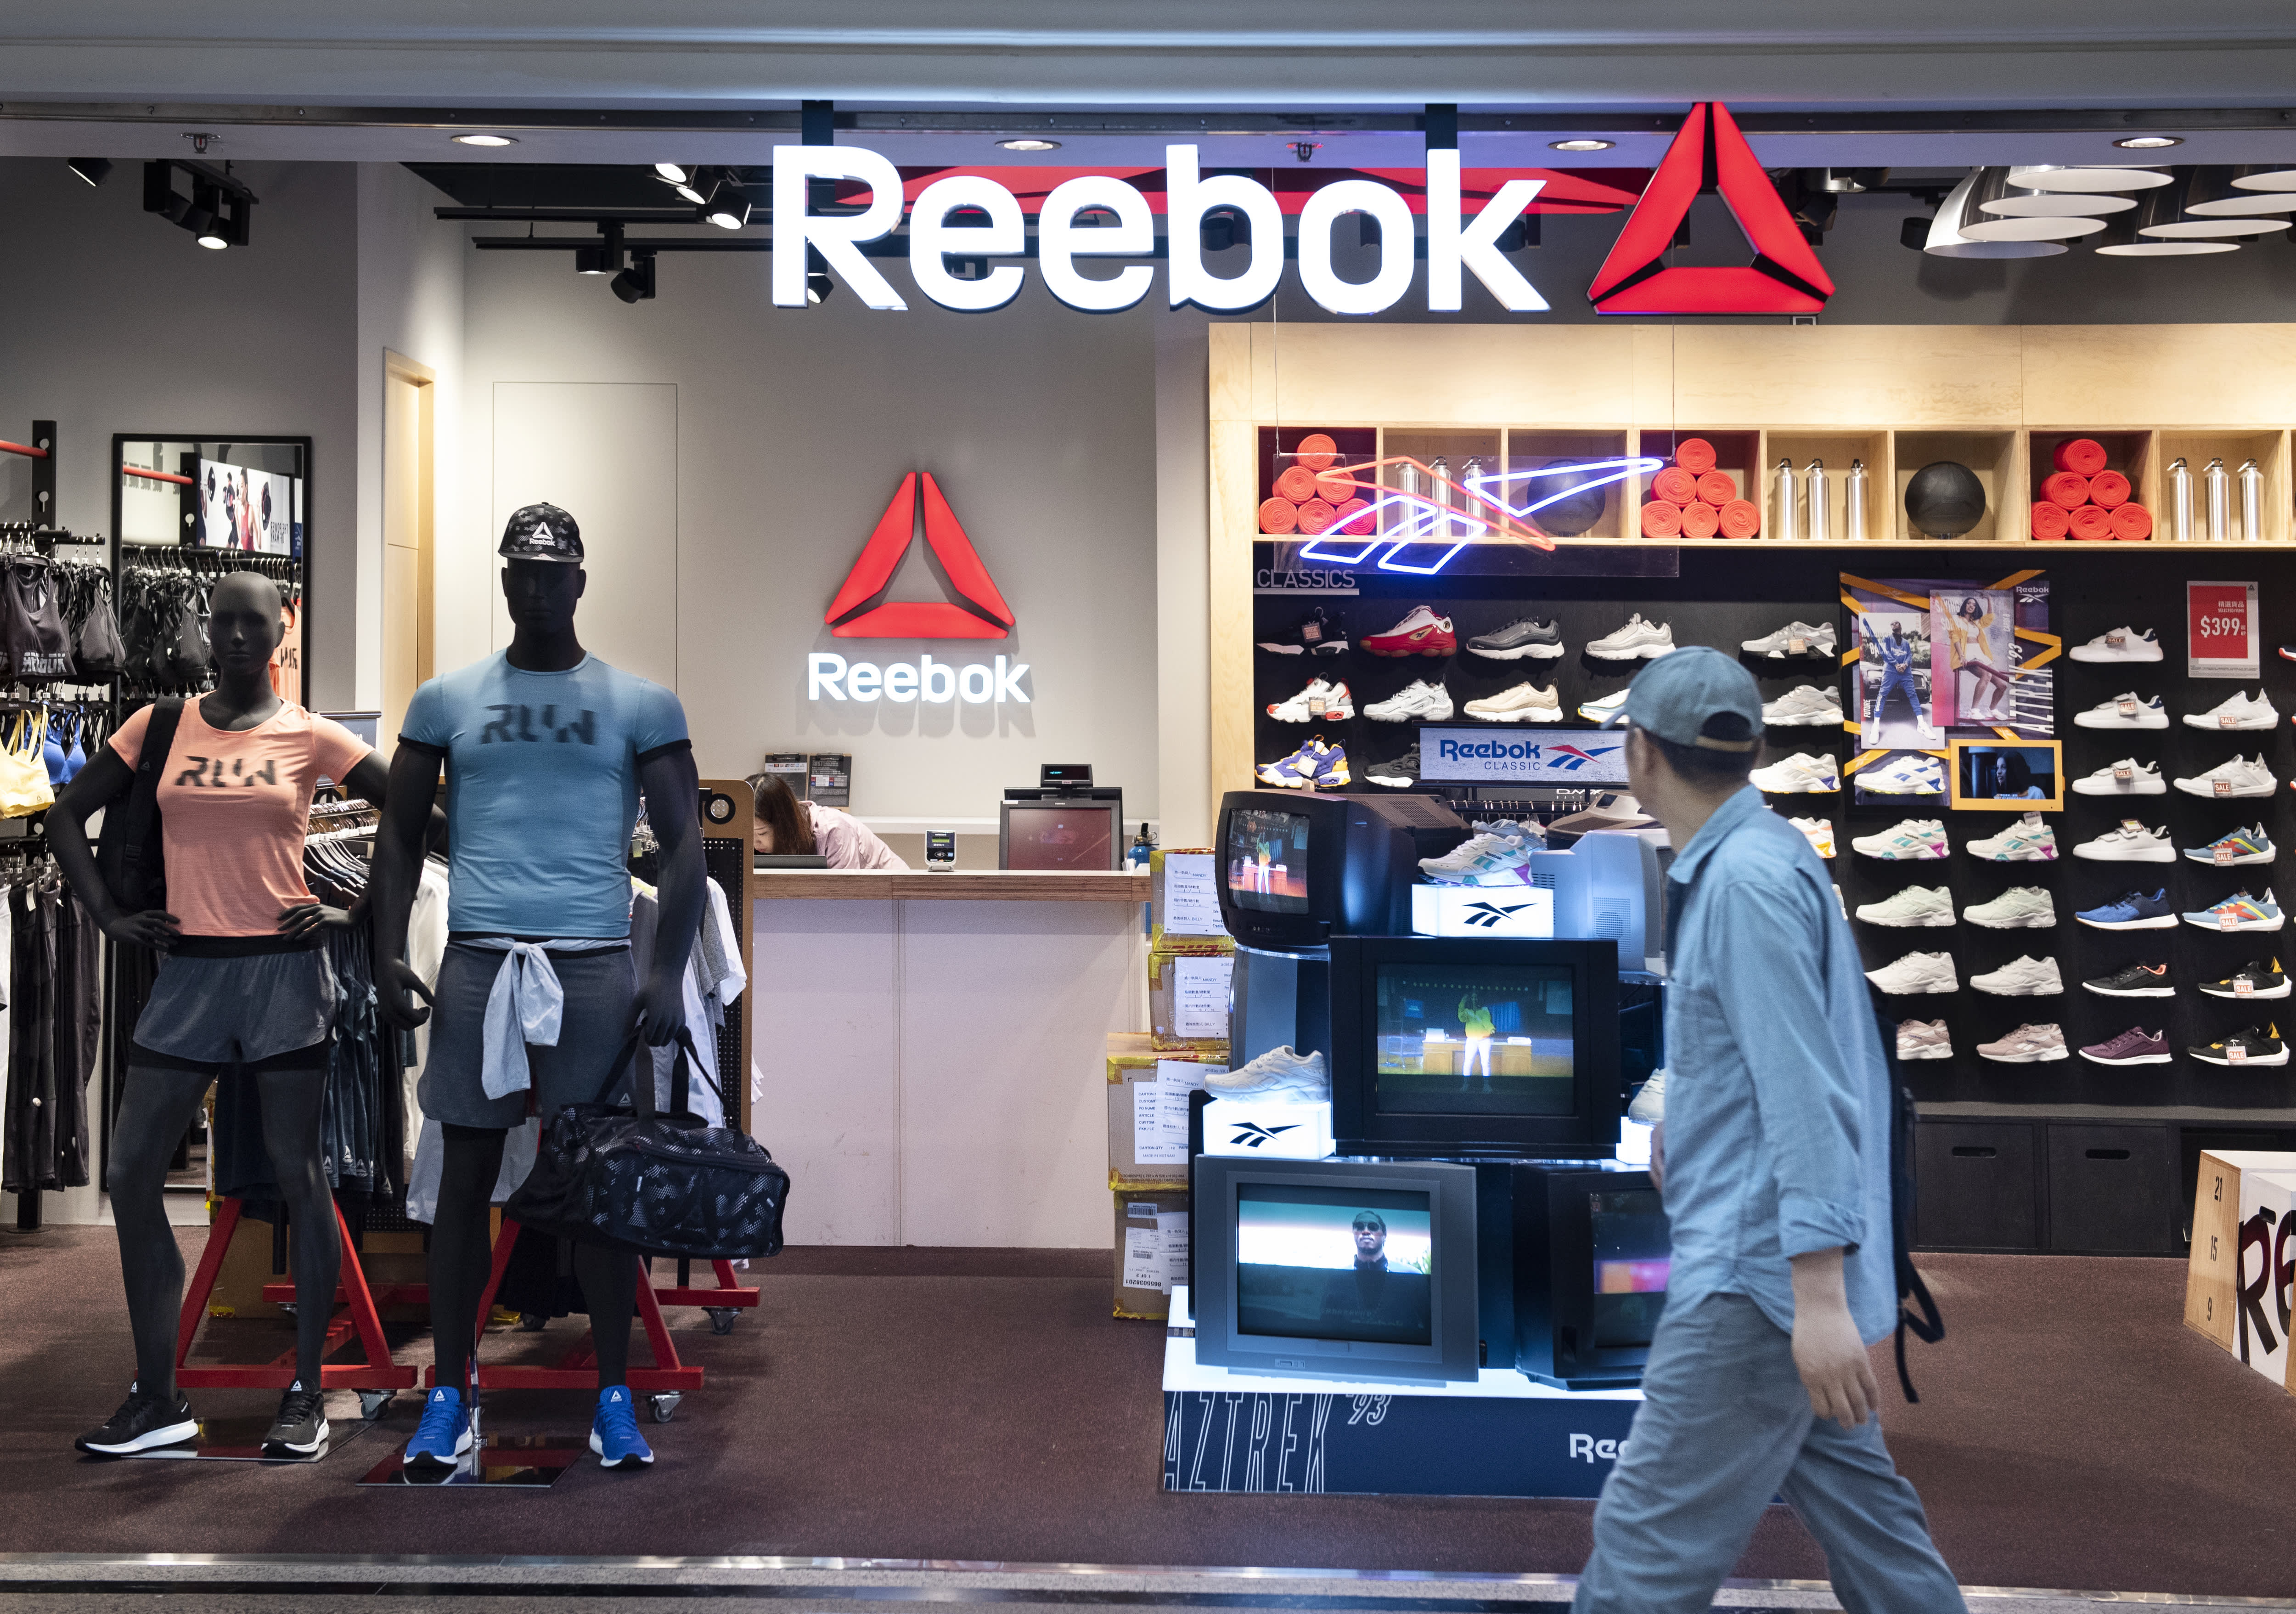 Adidas strikes deal to sell off struggling Reebok to Authentic Brands Group